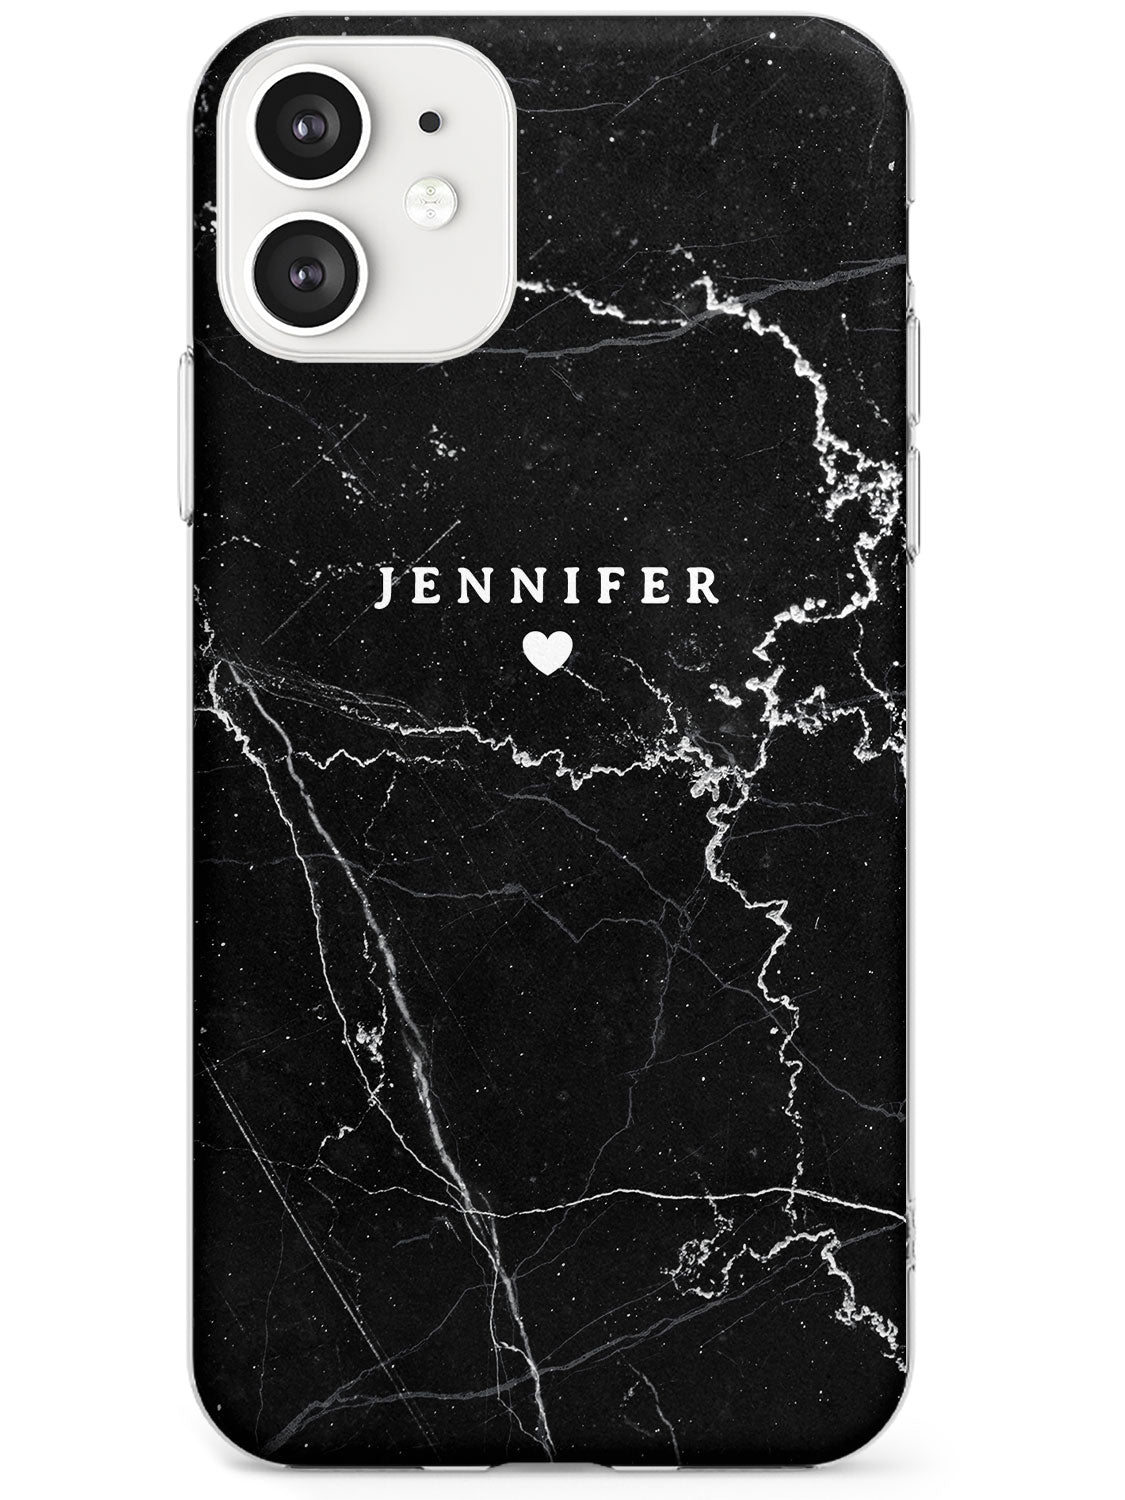 Black Marble 2 iPhone Case by Case Warehouse ®